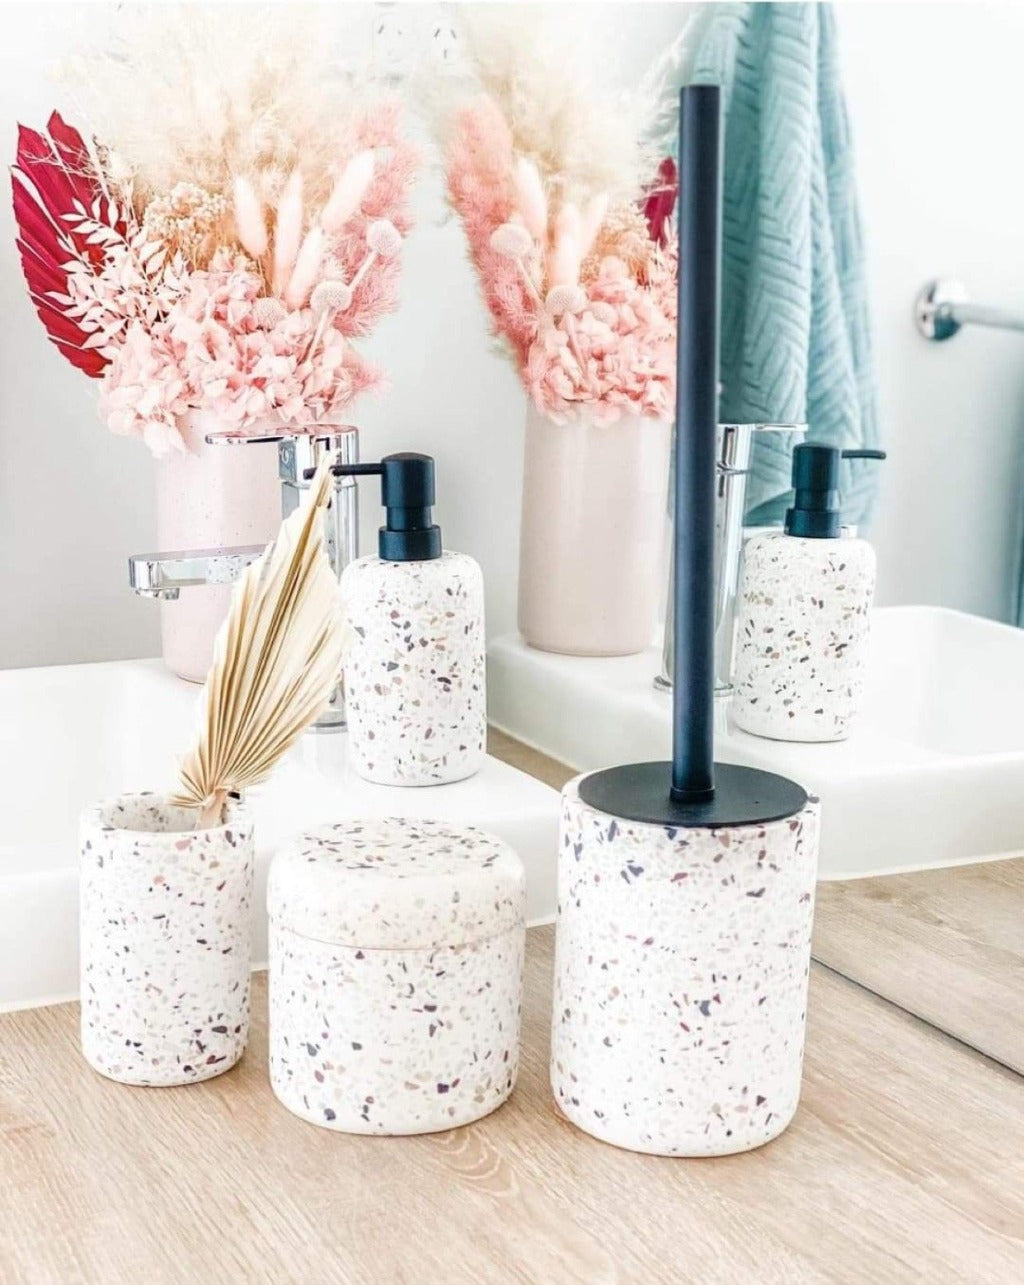 Venice White Terrazzo Tumbler - Salt&Pepper - Made from durable resin in a delightfully sleek shape - features a matte finish with an on-trend terrazzo inlay |Bliss Gifts & Homewares - Unit 8, 259 Princes Hwy Ulladulla - Shop Online & In store - 0427795959, 44541523 - Australia wide shipping